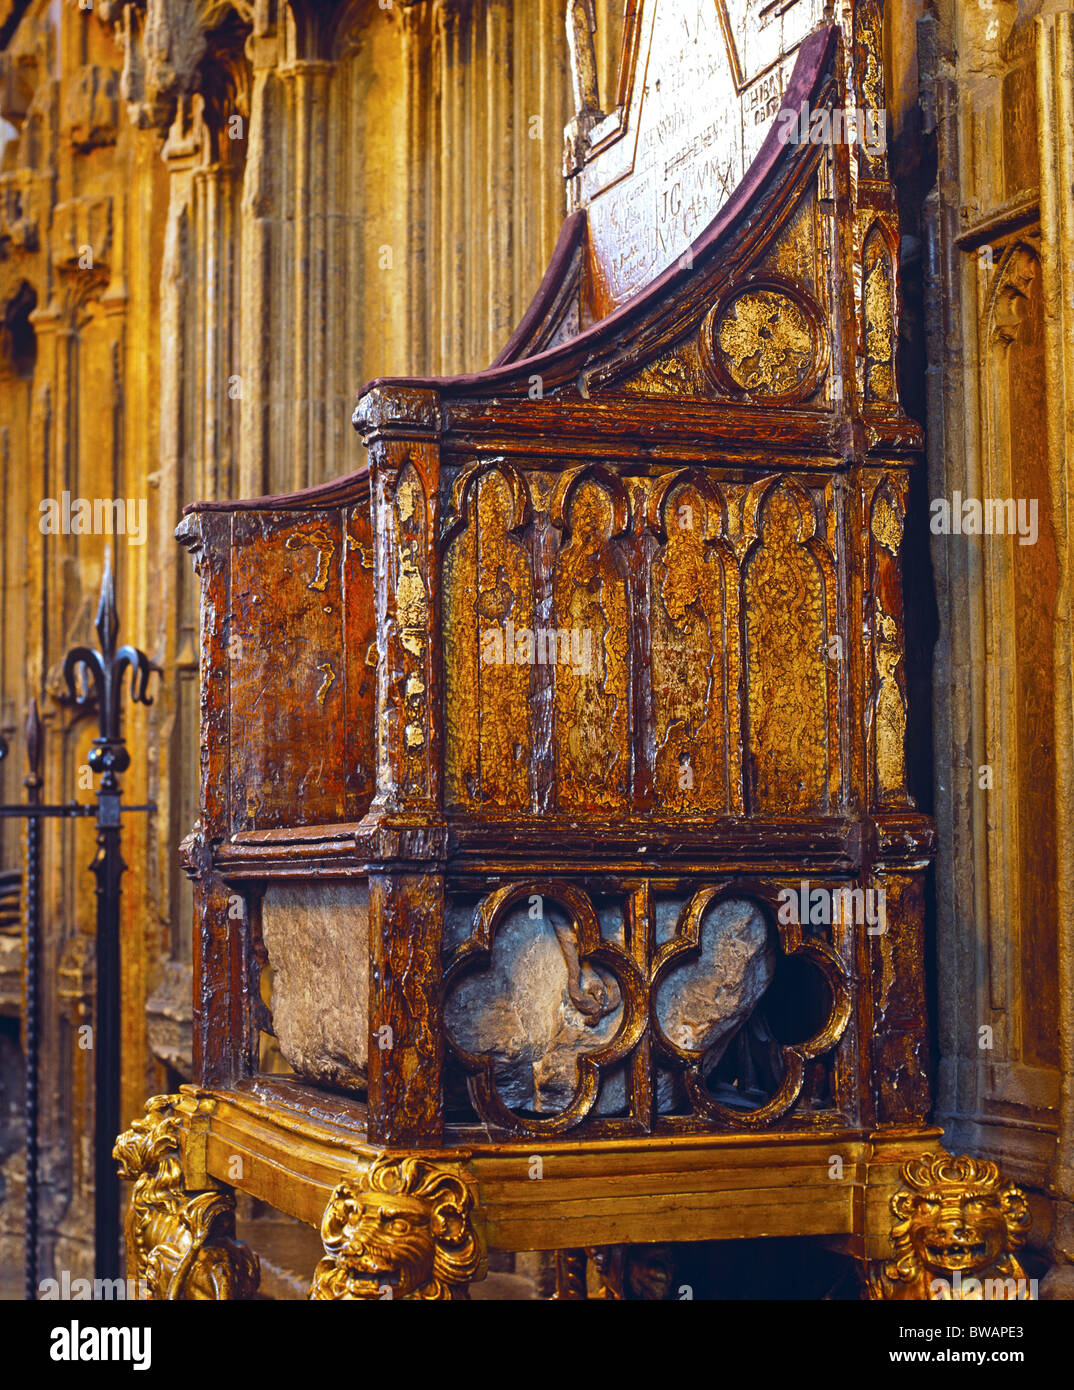 The Stone Of Scone Coronation Chair Westminster Abbey London UK & The Stone Of Scone Coronation Chair Westminster Abbey London UK ...